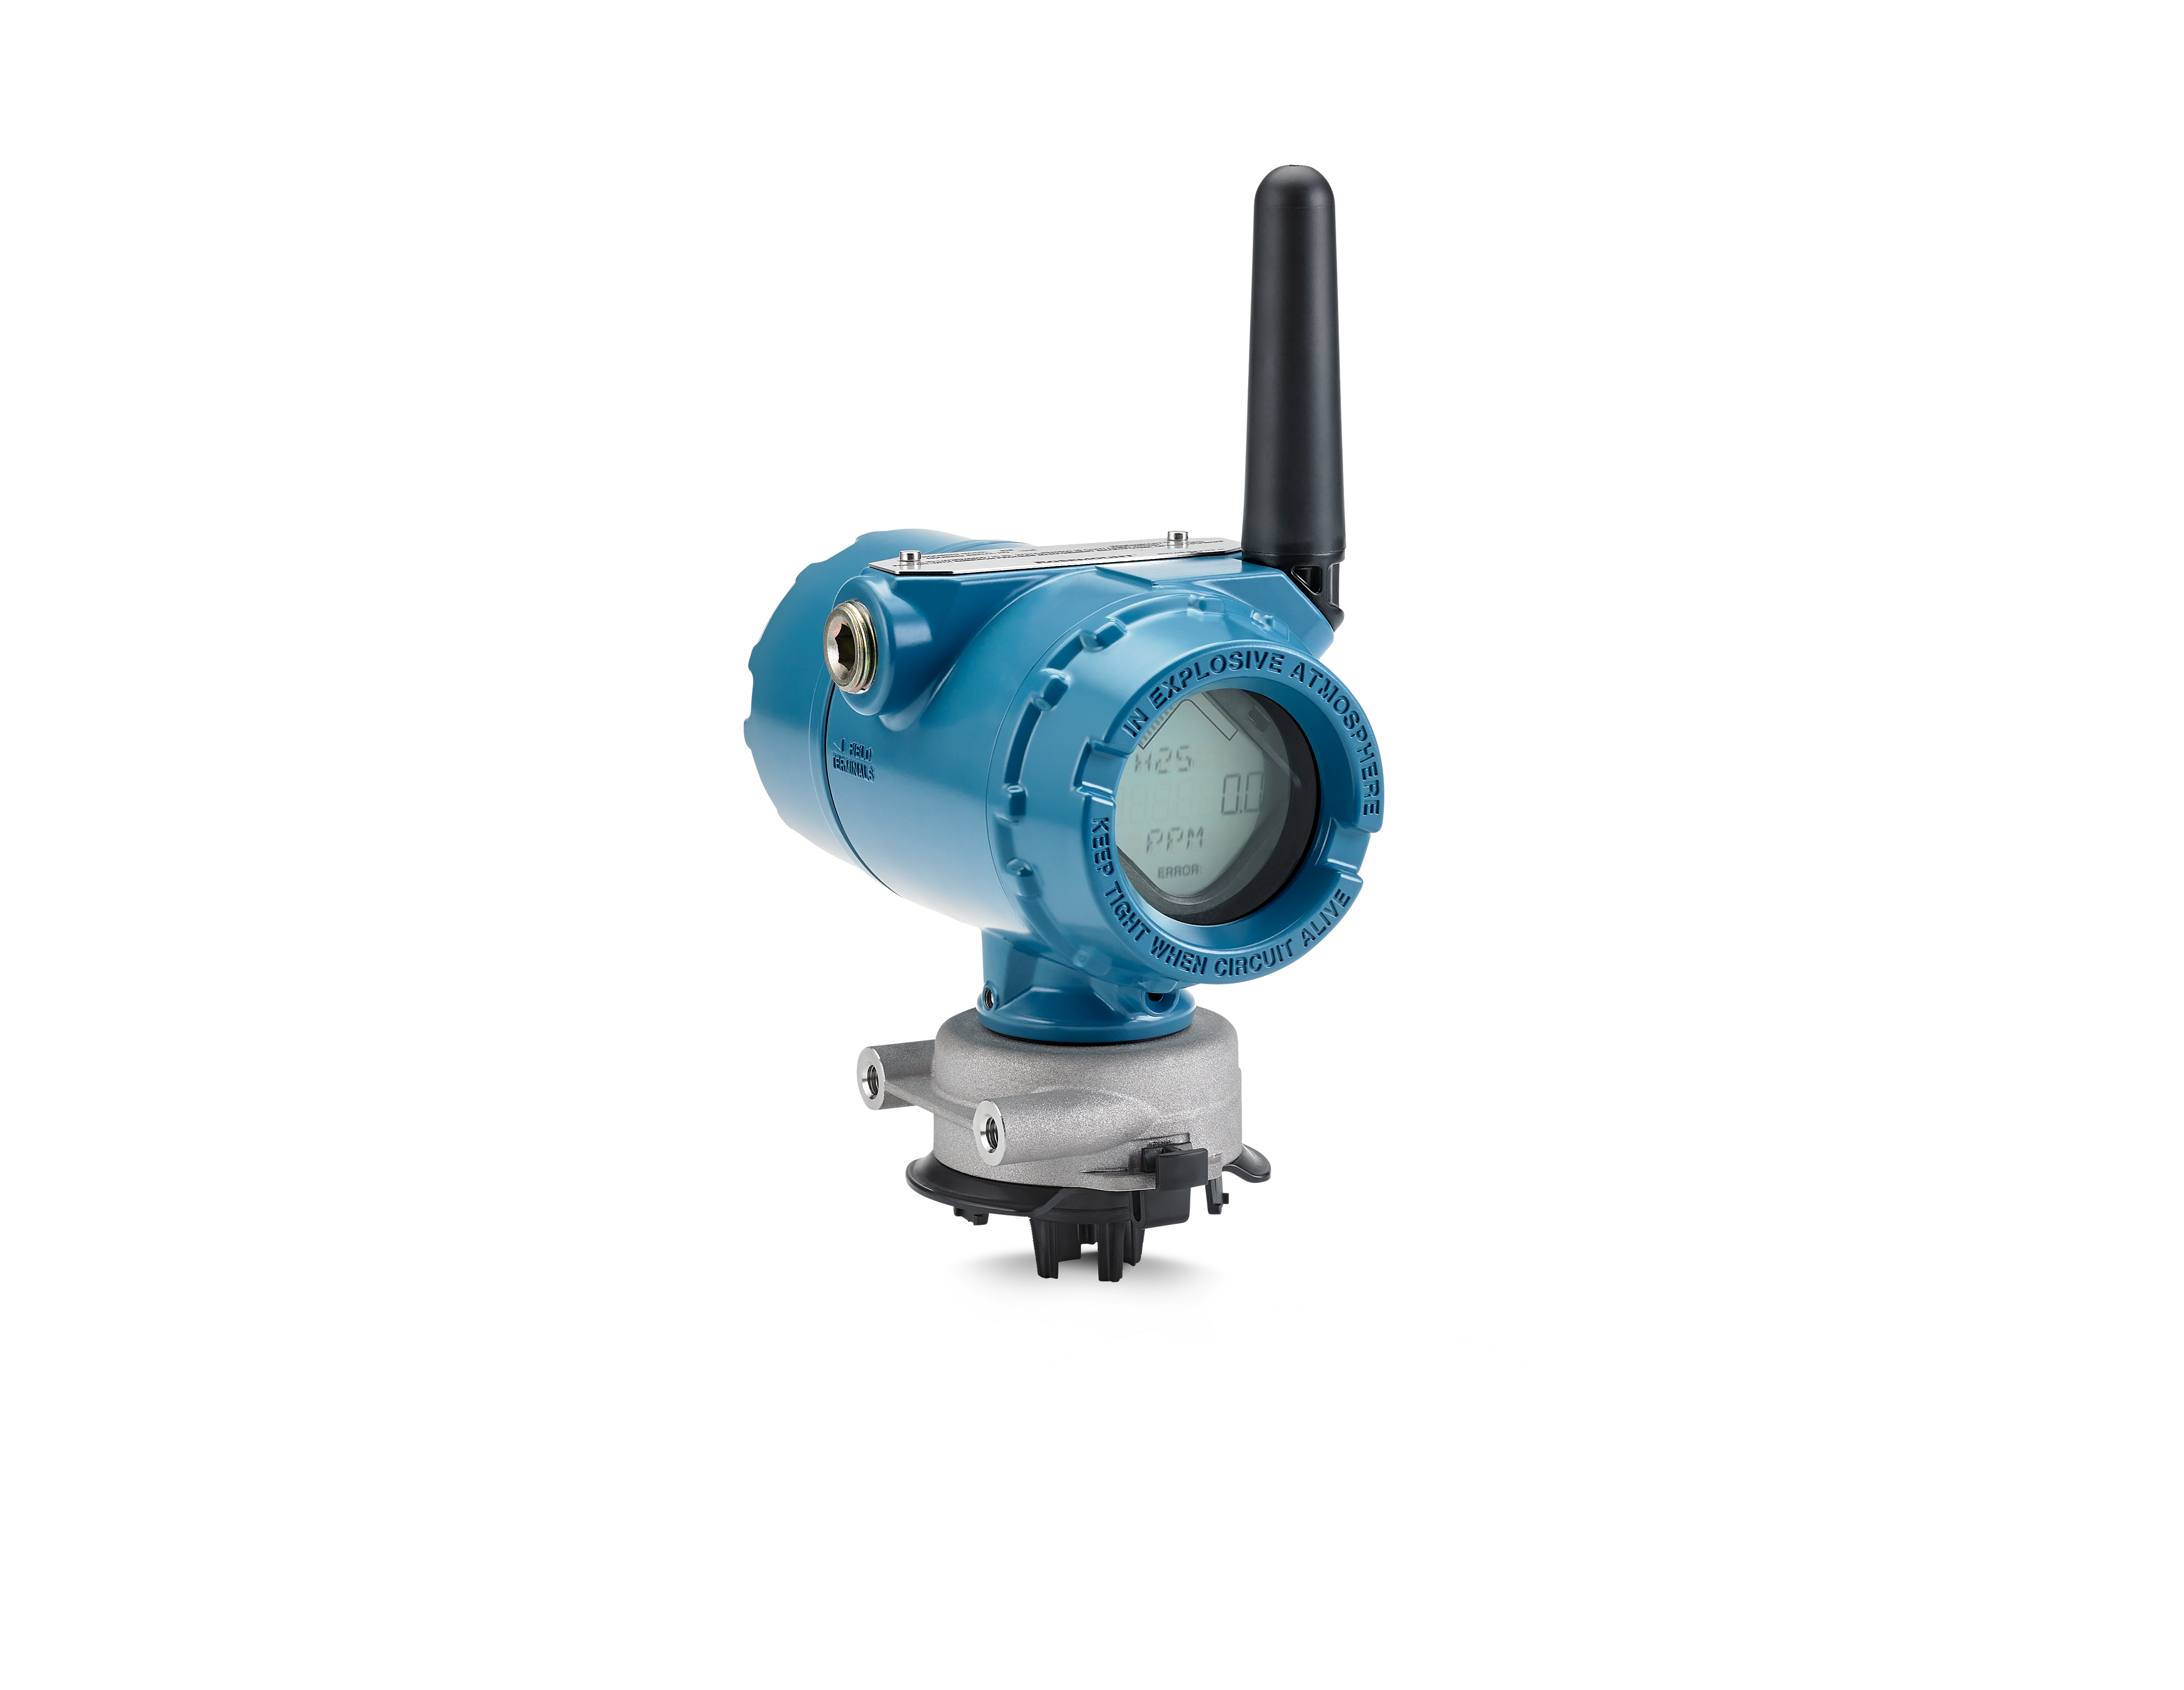 The Rosemount 928 wireless gas monitor taps the power of WirelessHART to simplify integration, reduce installation costs and ensure safety in difficult-to-reach areas.